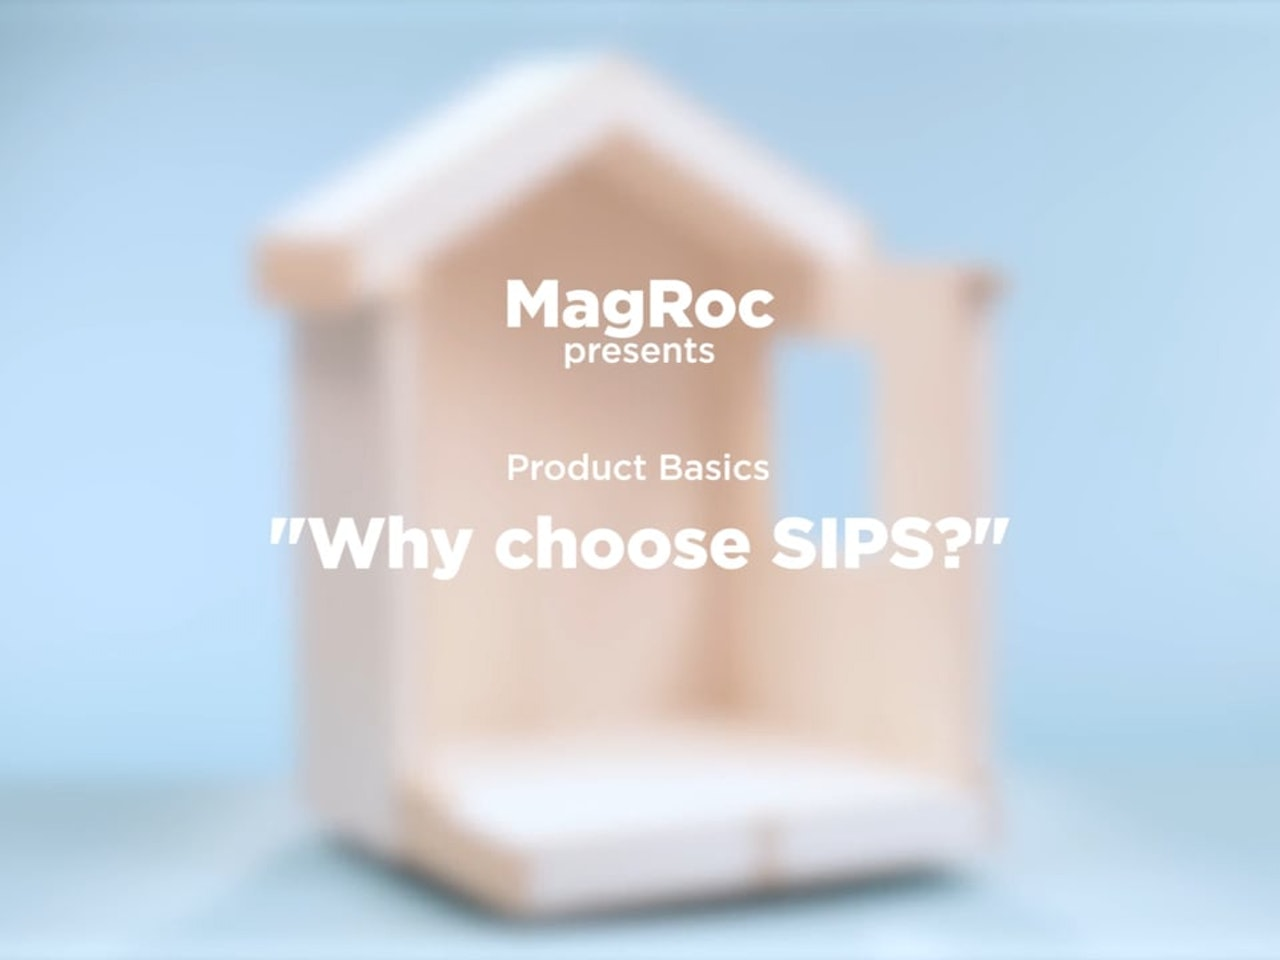 MagRoc - Why Choose SIPS?